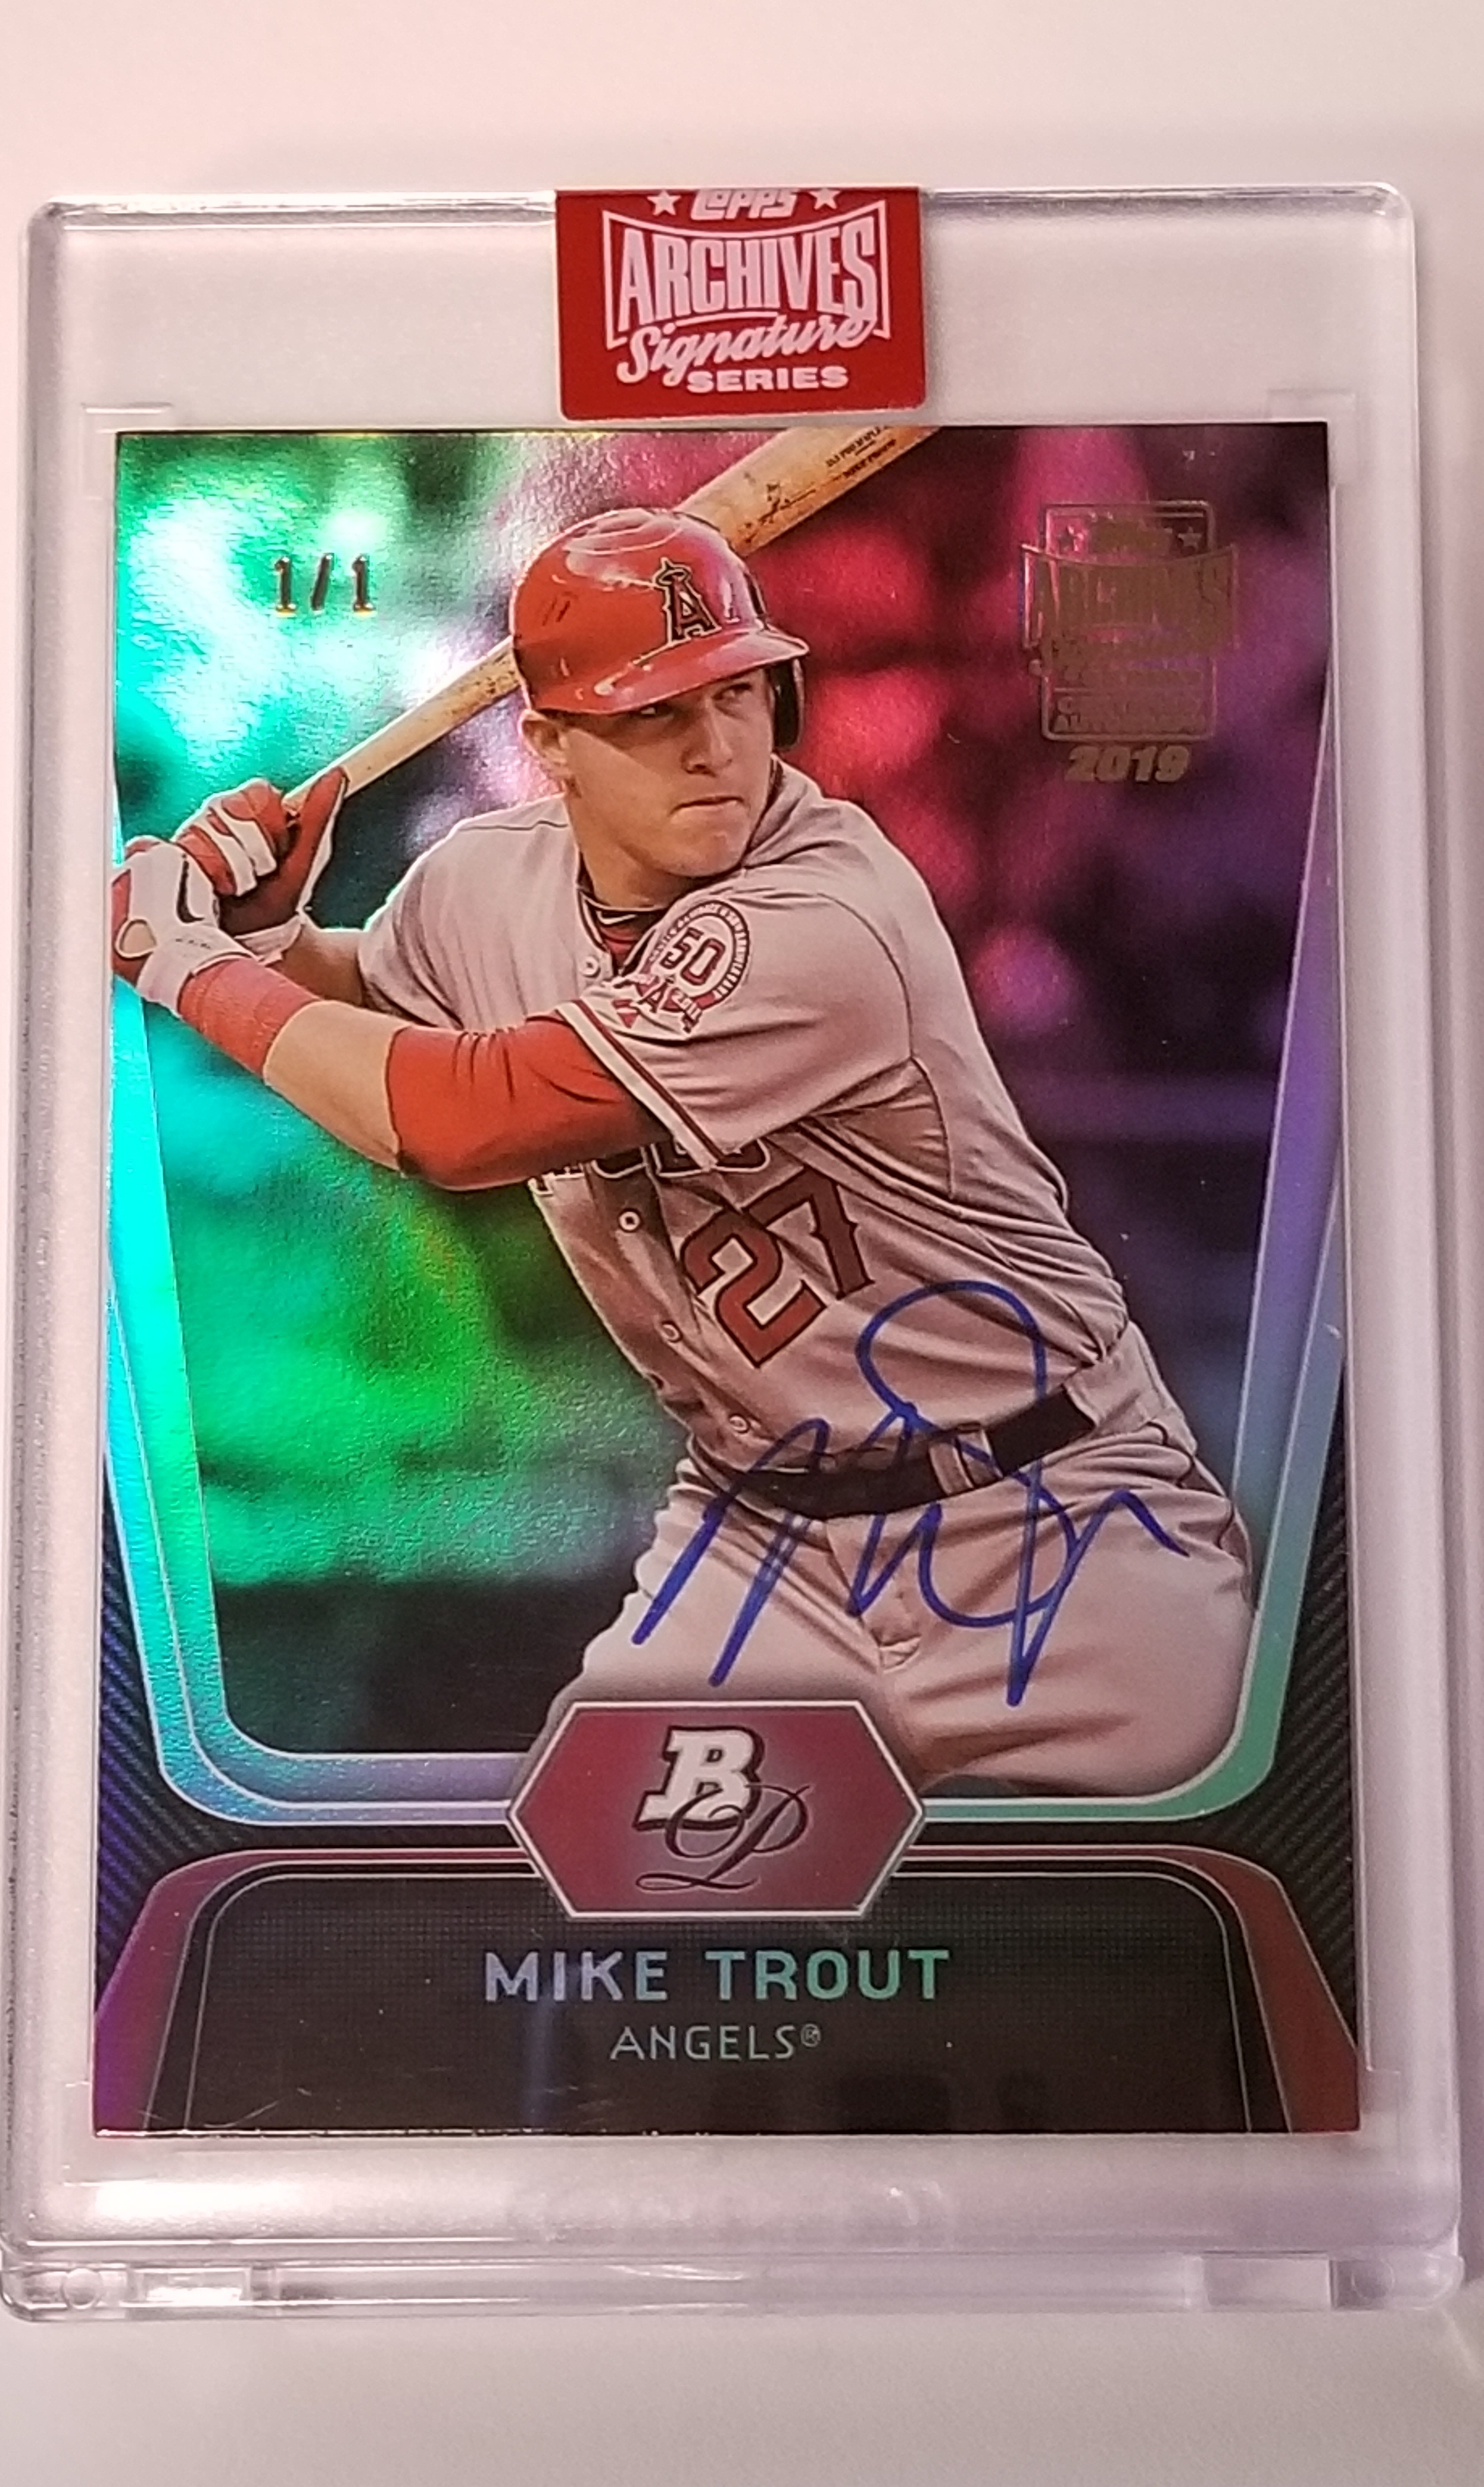 Mike Trout 2019 Topps Archives Signature Series 11 2012 Bowman Platinum